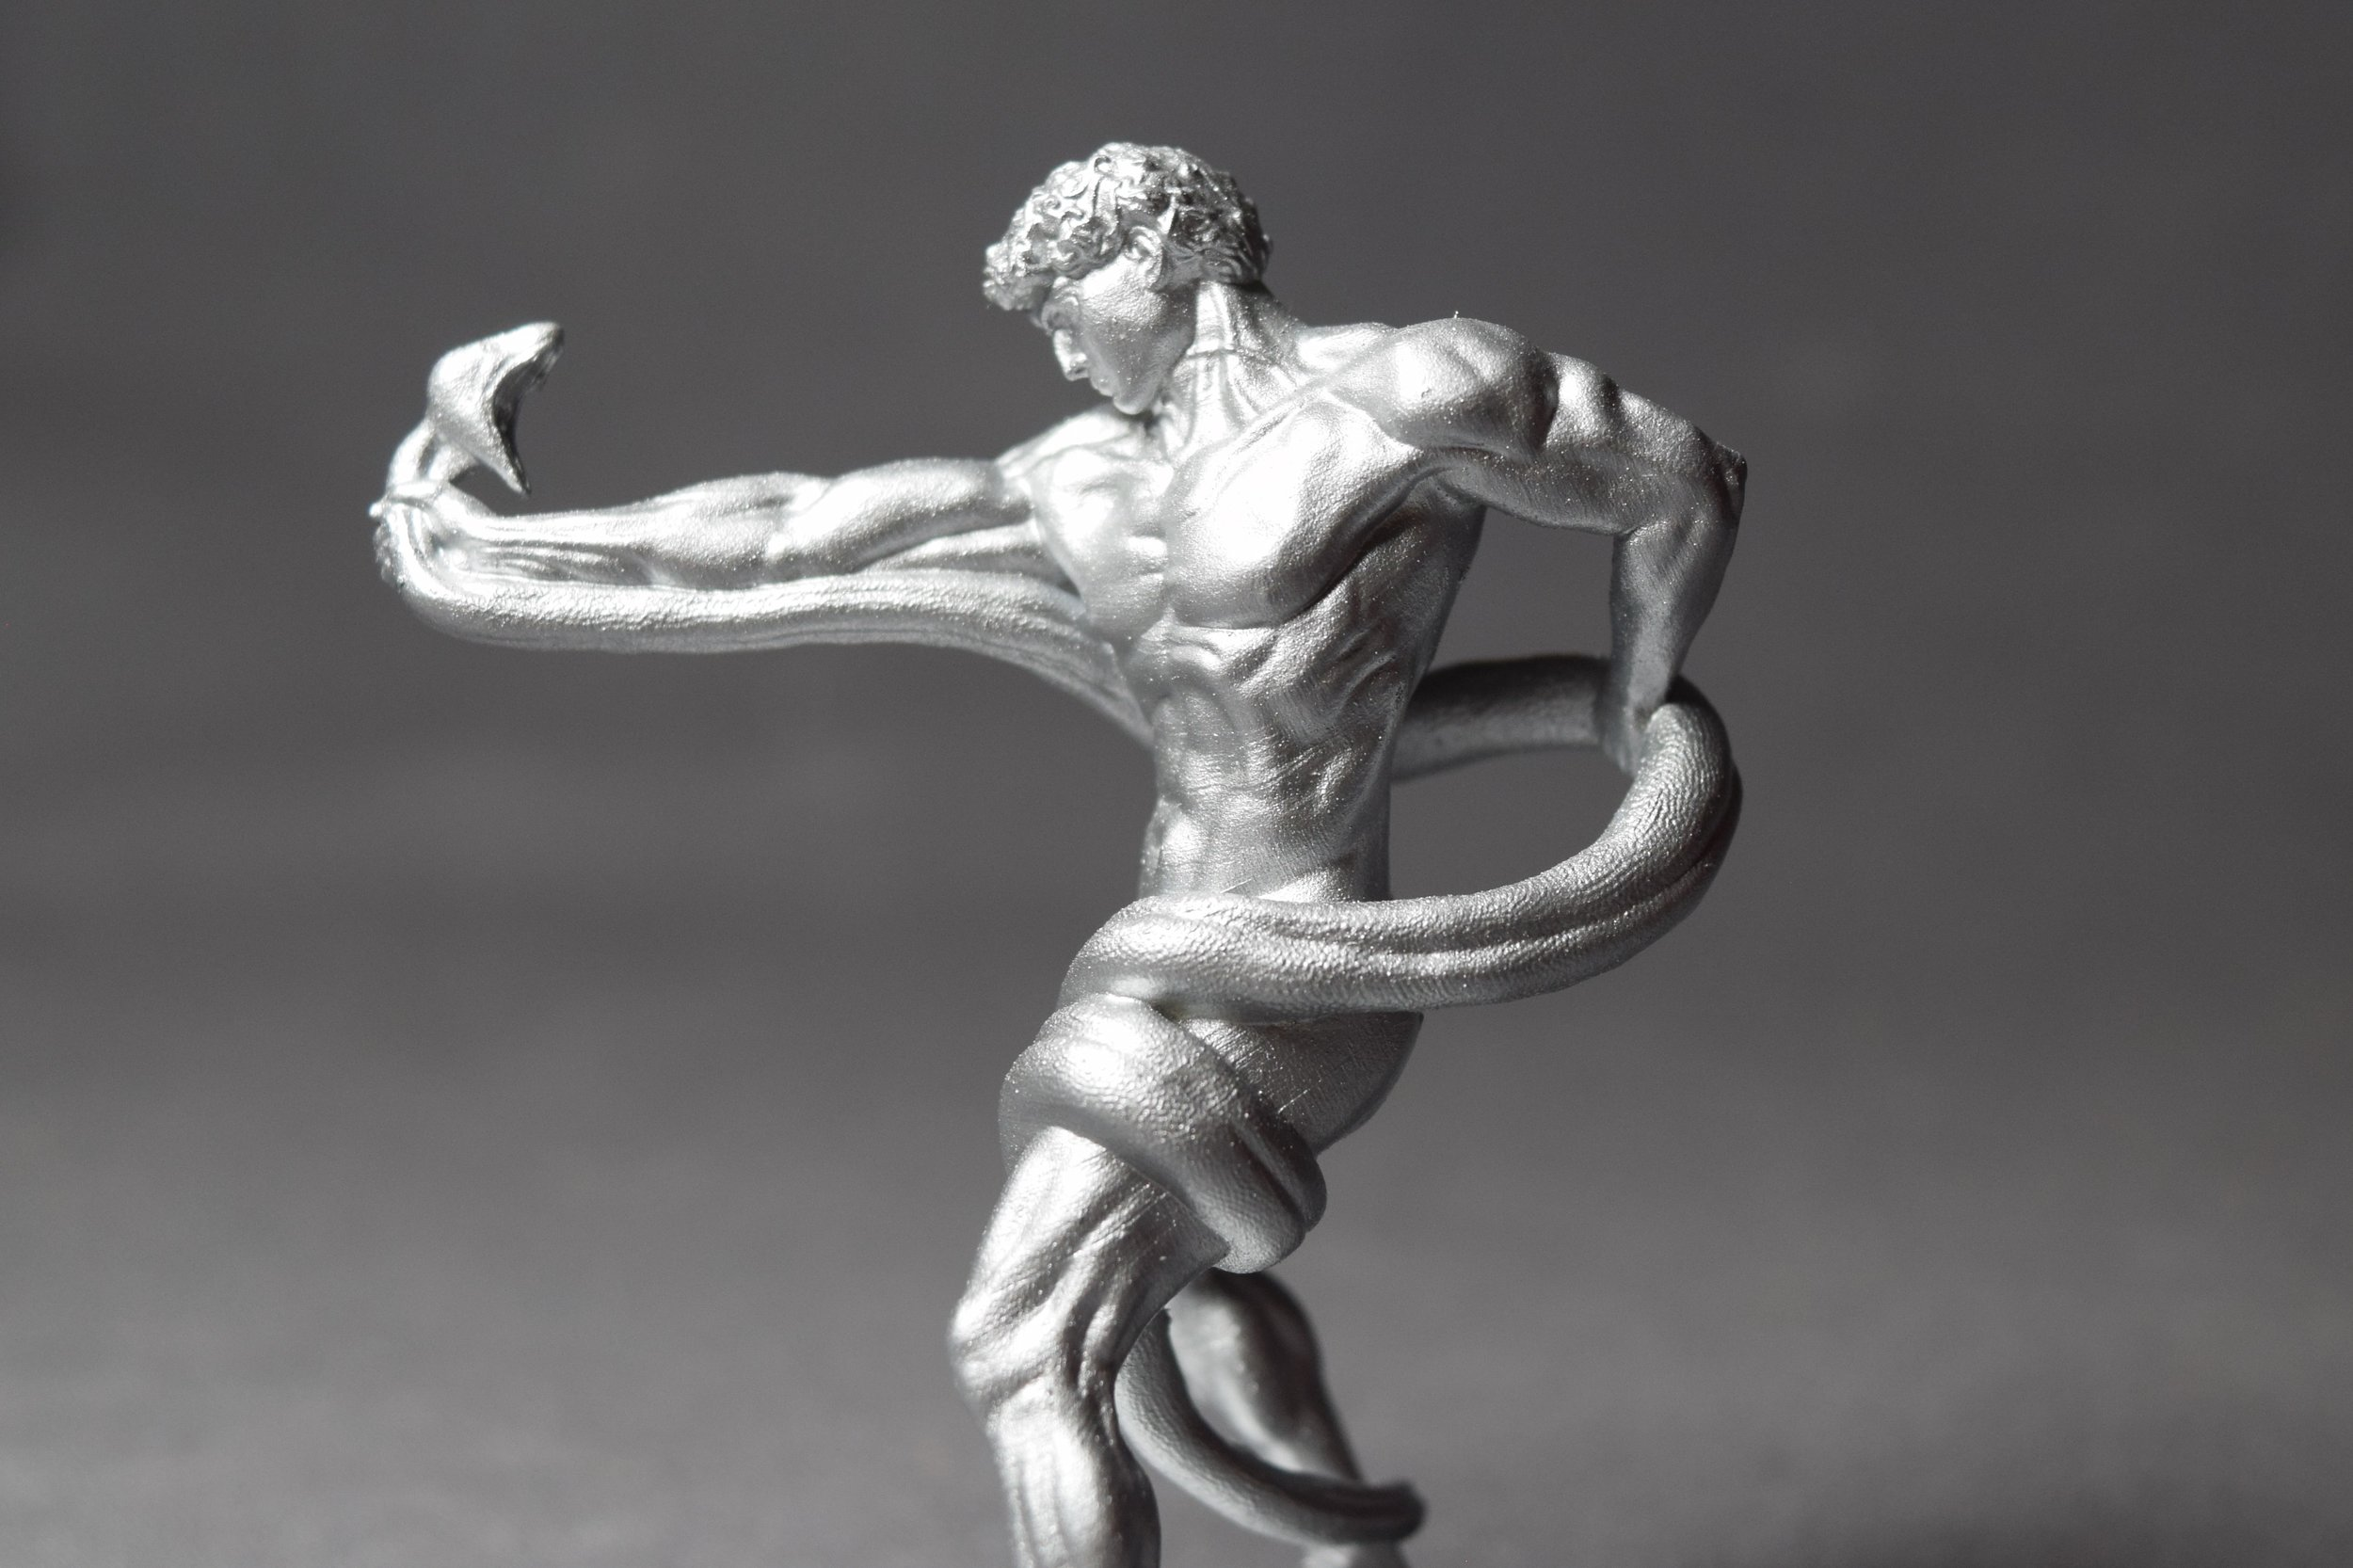 Man Fighting Python; Printed in Grey at 50microns on the Form2 then Spray Painted Silver